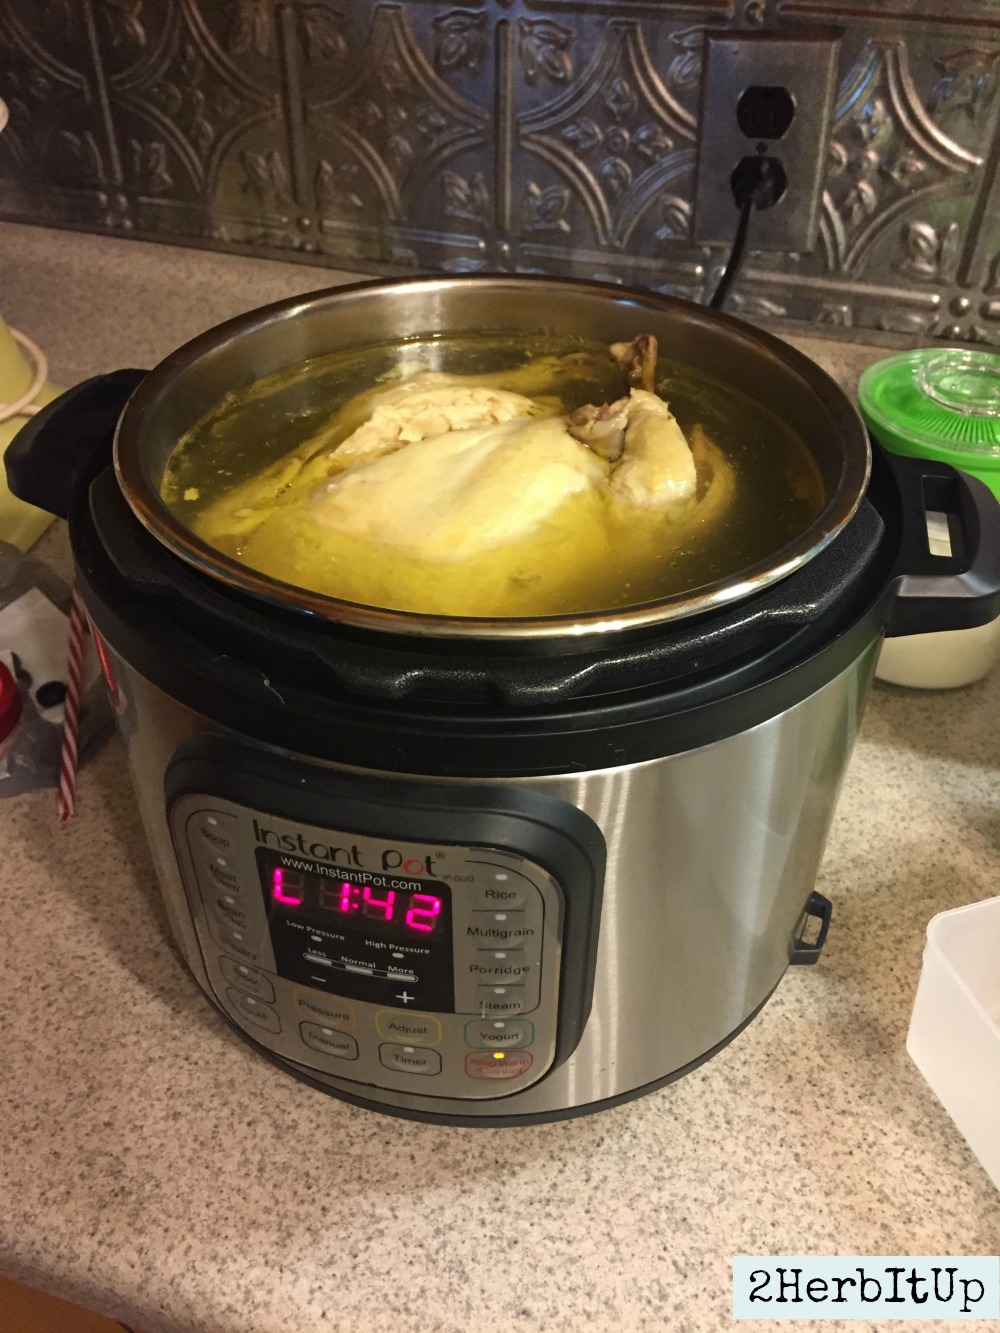 From freezer to cooked chicken and broth in an hour using the Instant Pot.